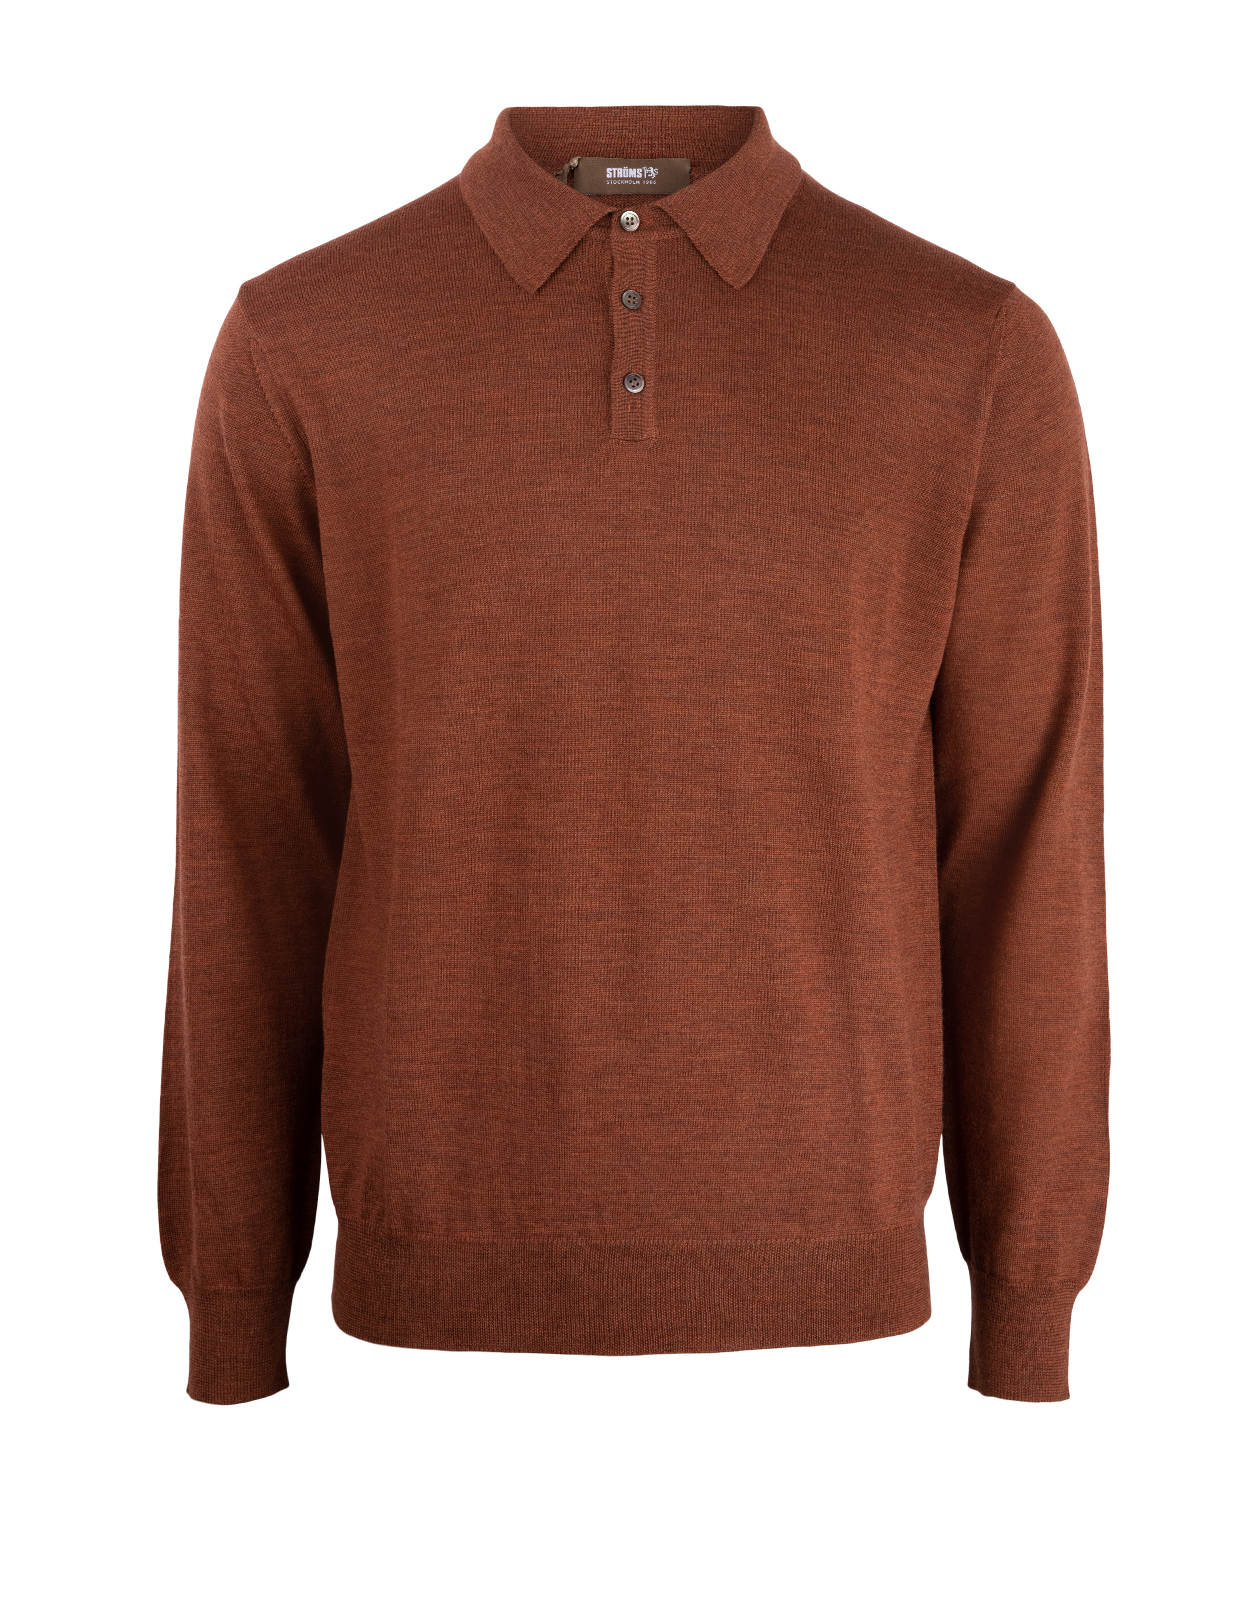 Poloshirt Sweater Merino Rust